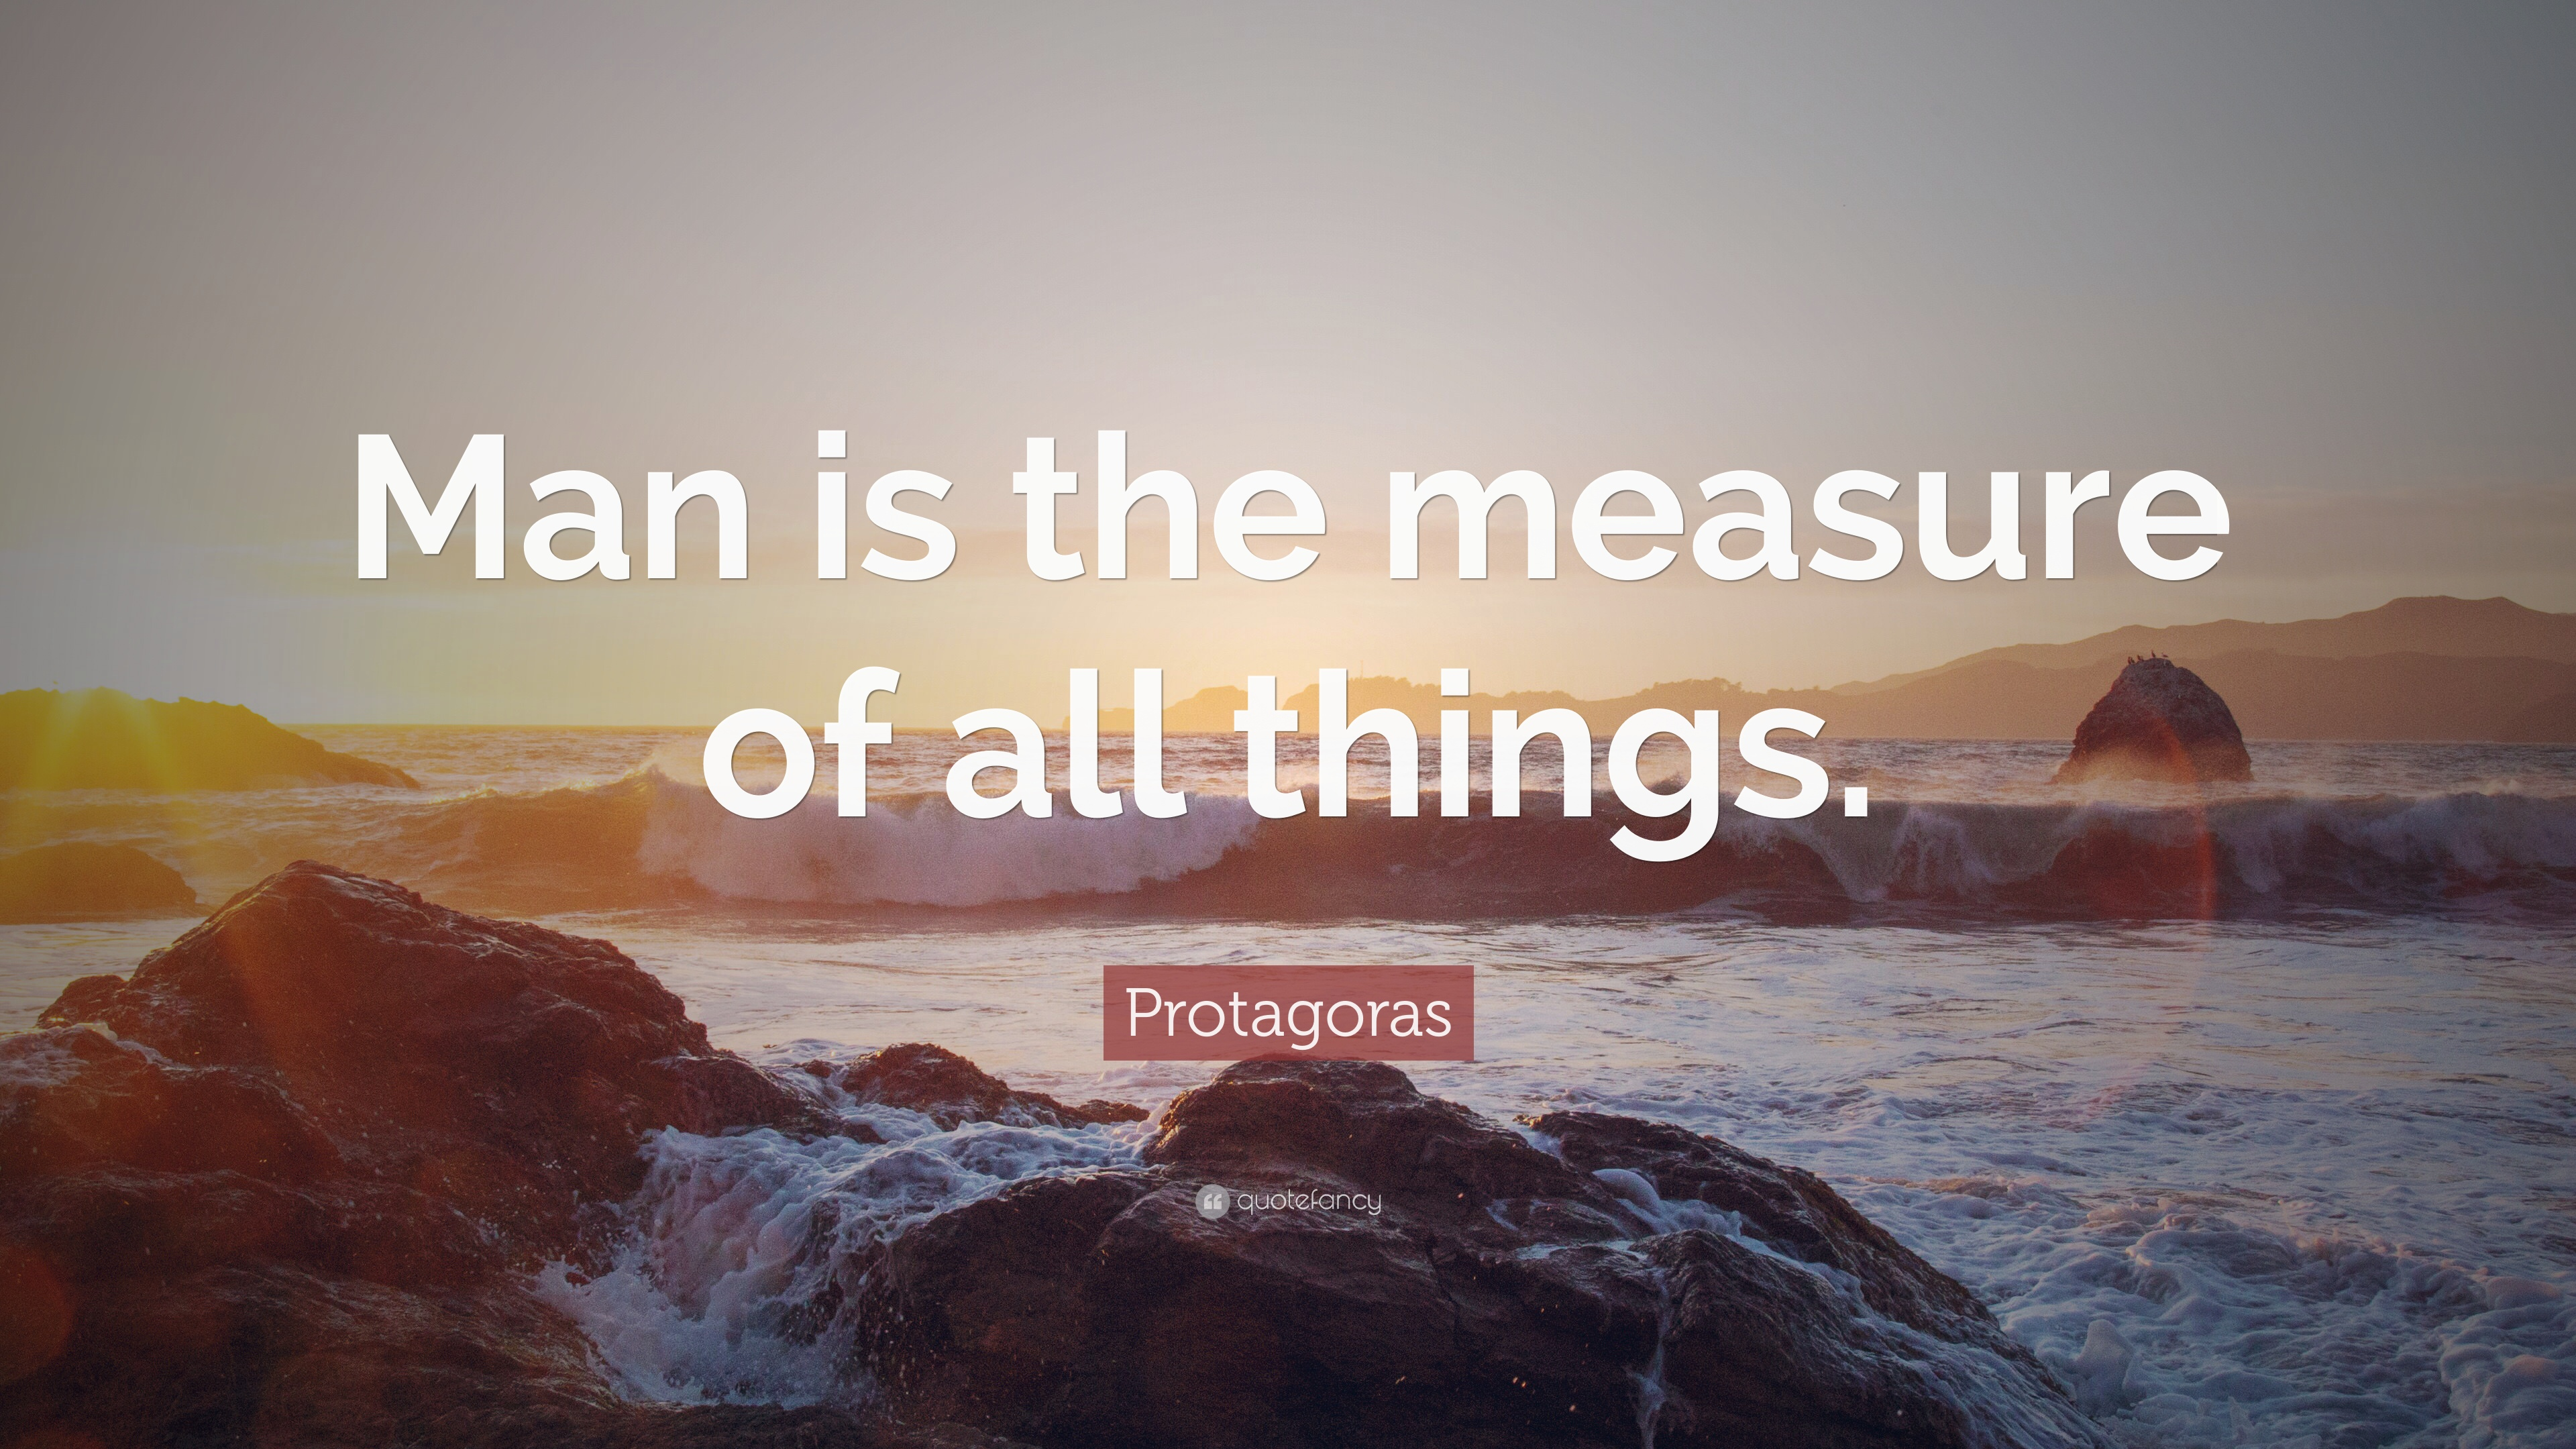 Protagoras man is the measure of all things